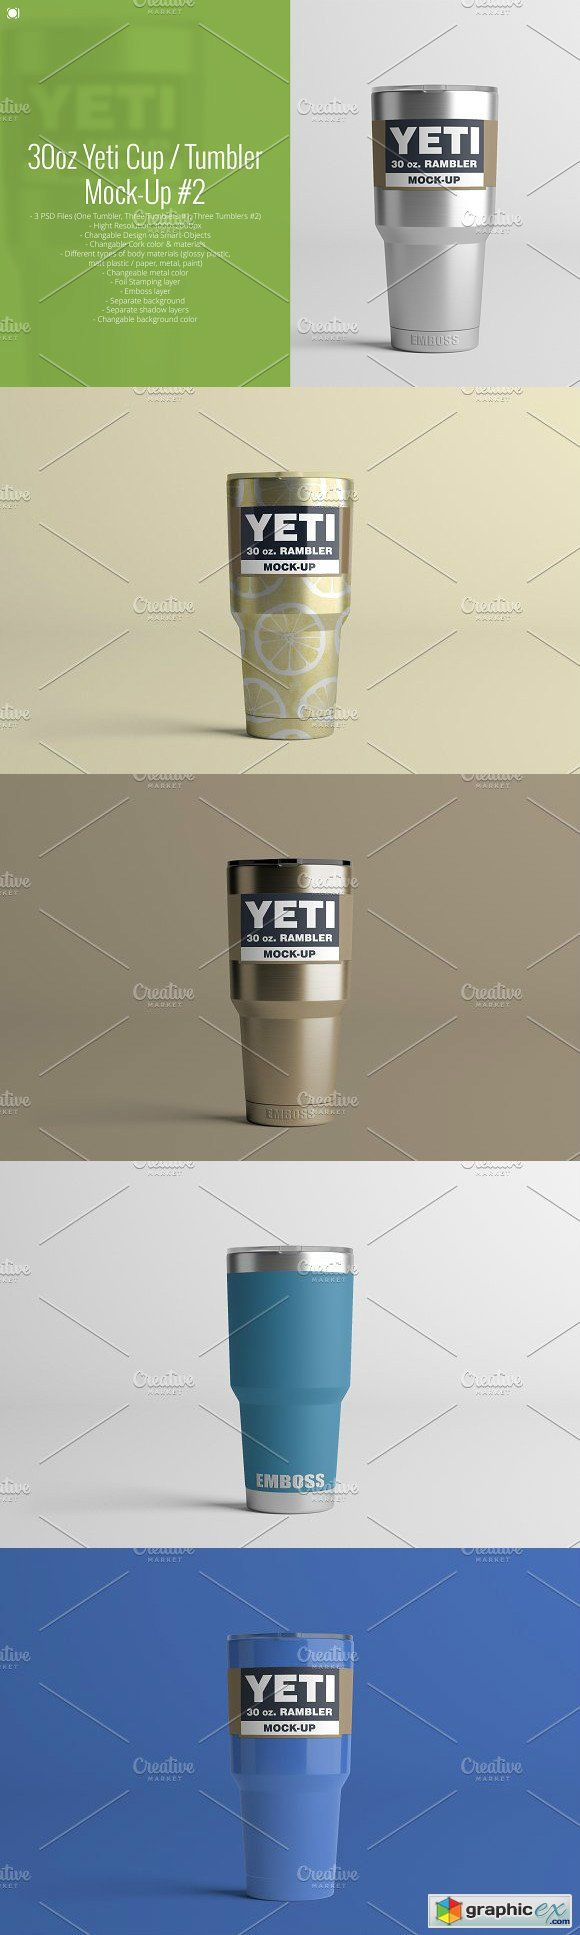 30oz. Yeti Cup Tumbler Mock-Up 2